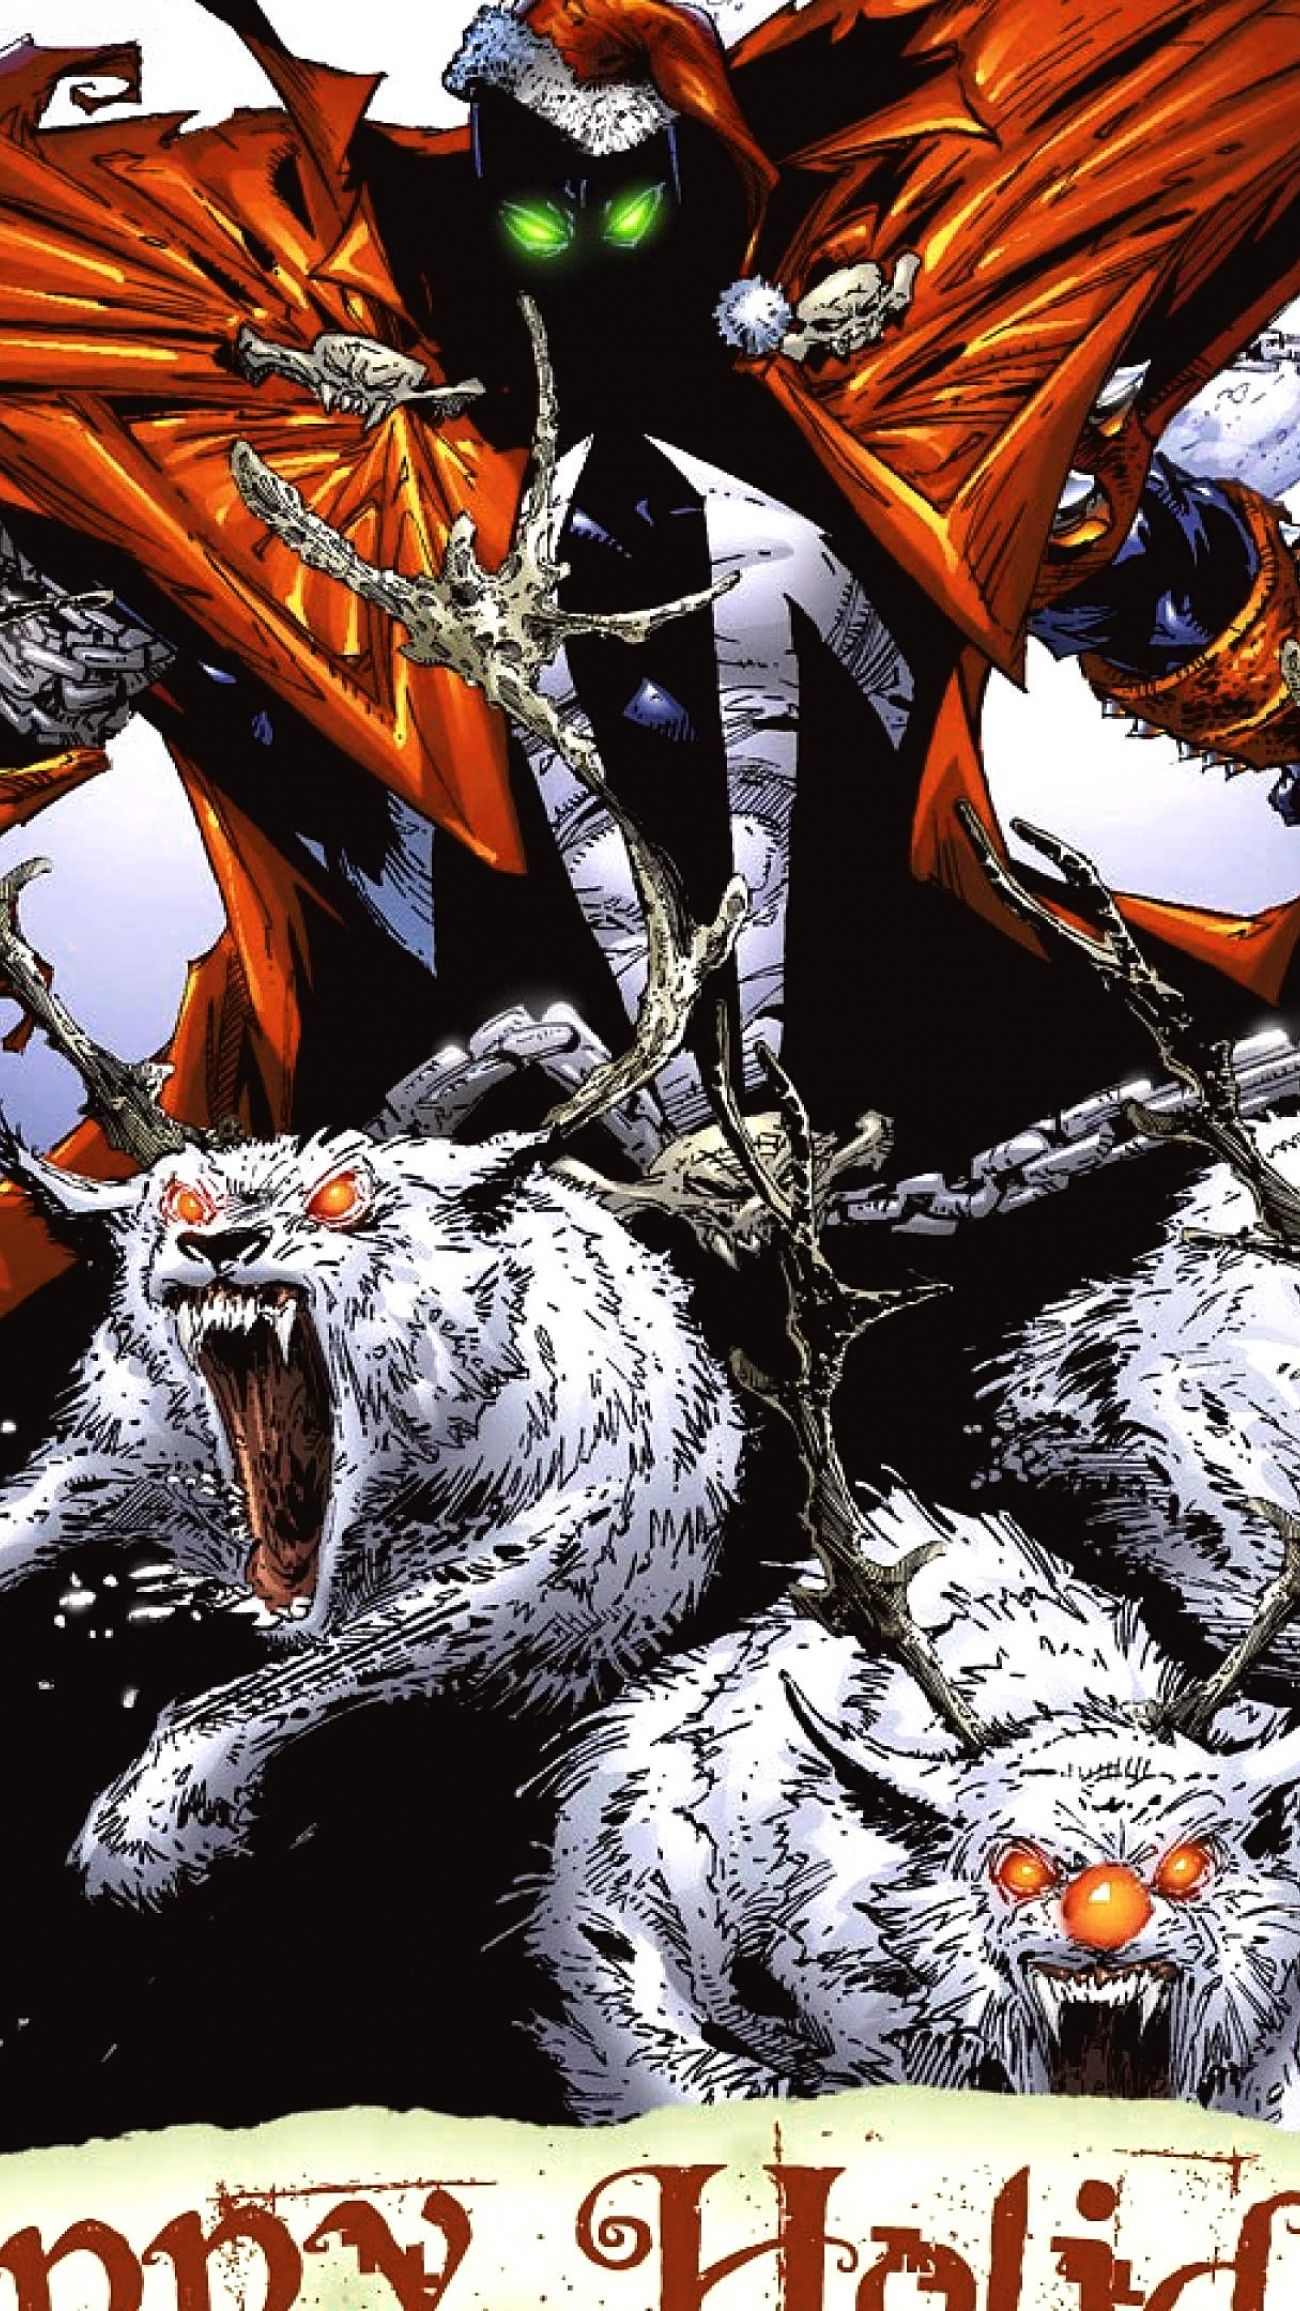 Spawn Comics Christmas Wallpaper Desktop 1600x1200 Hd